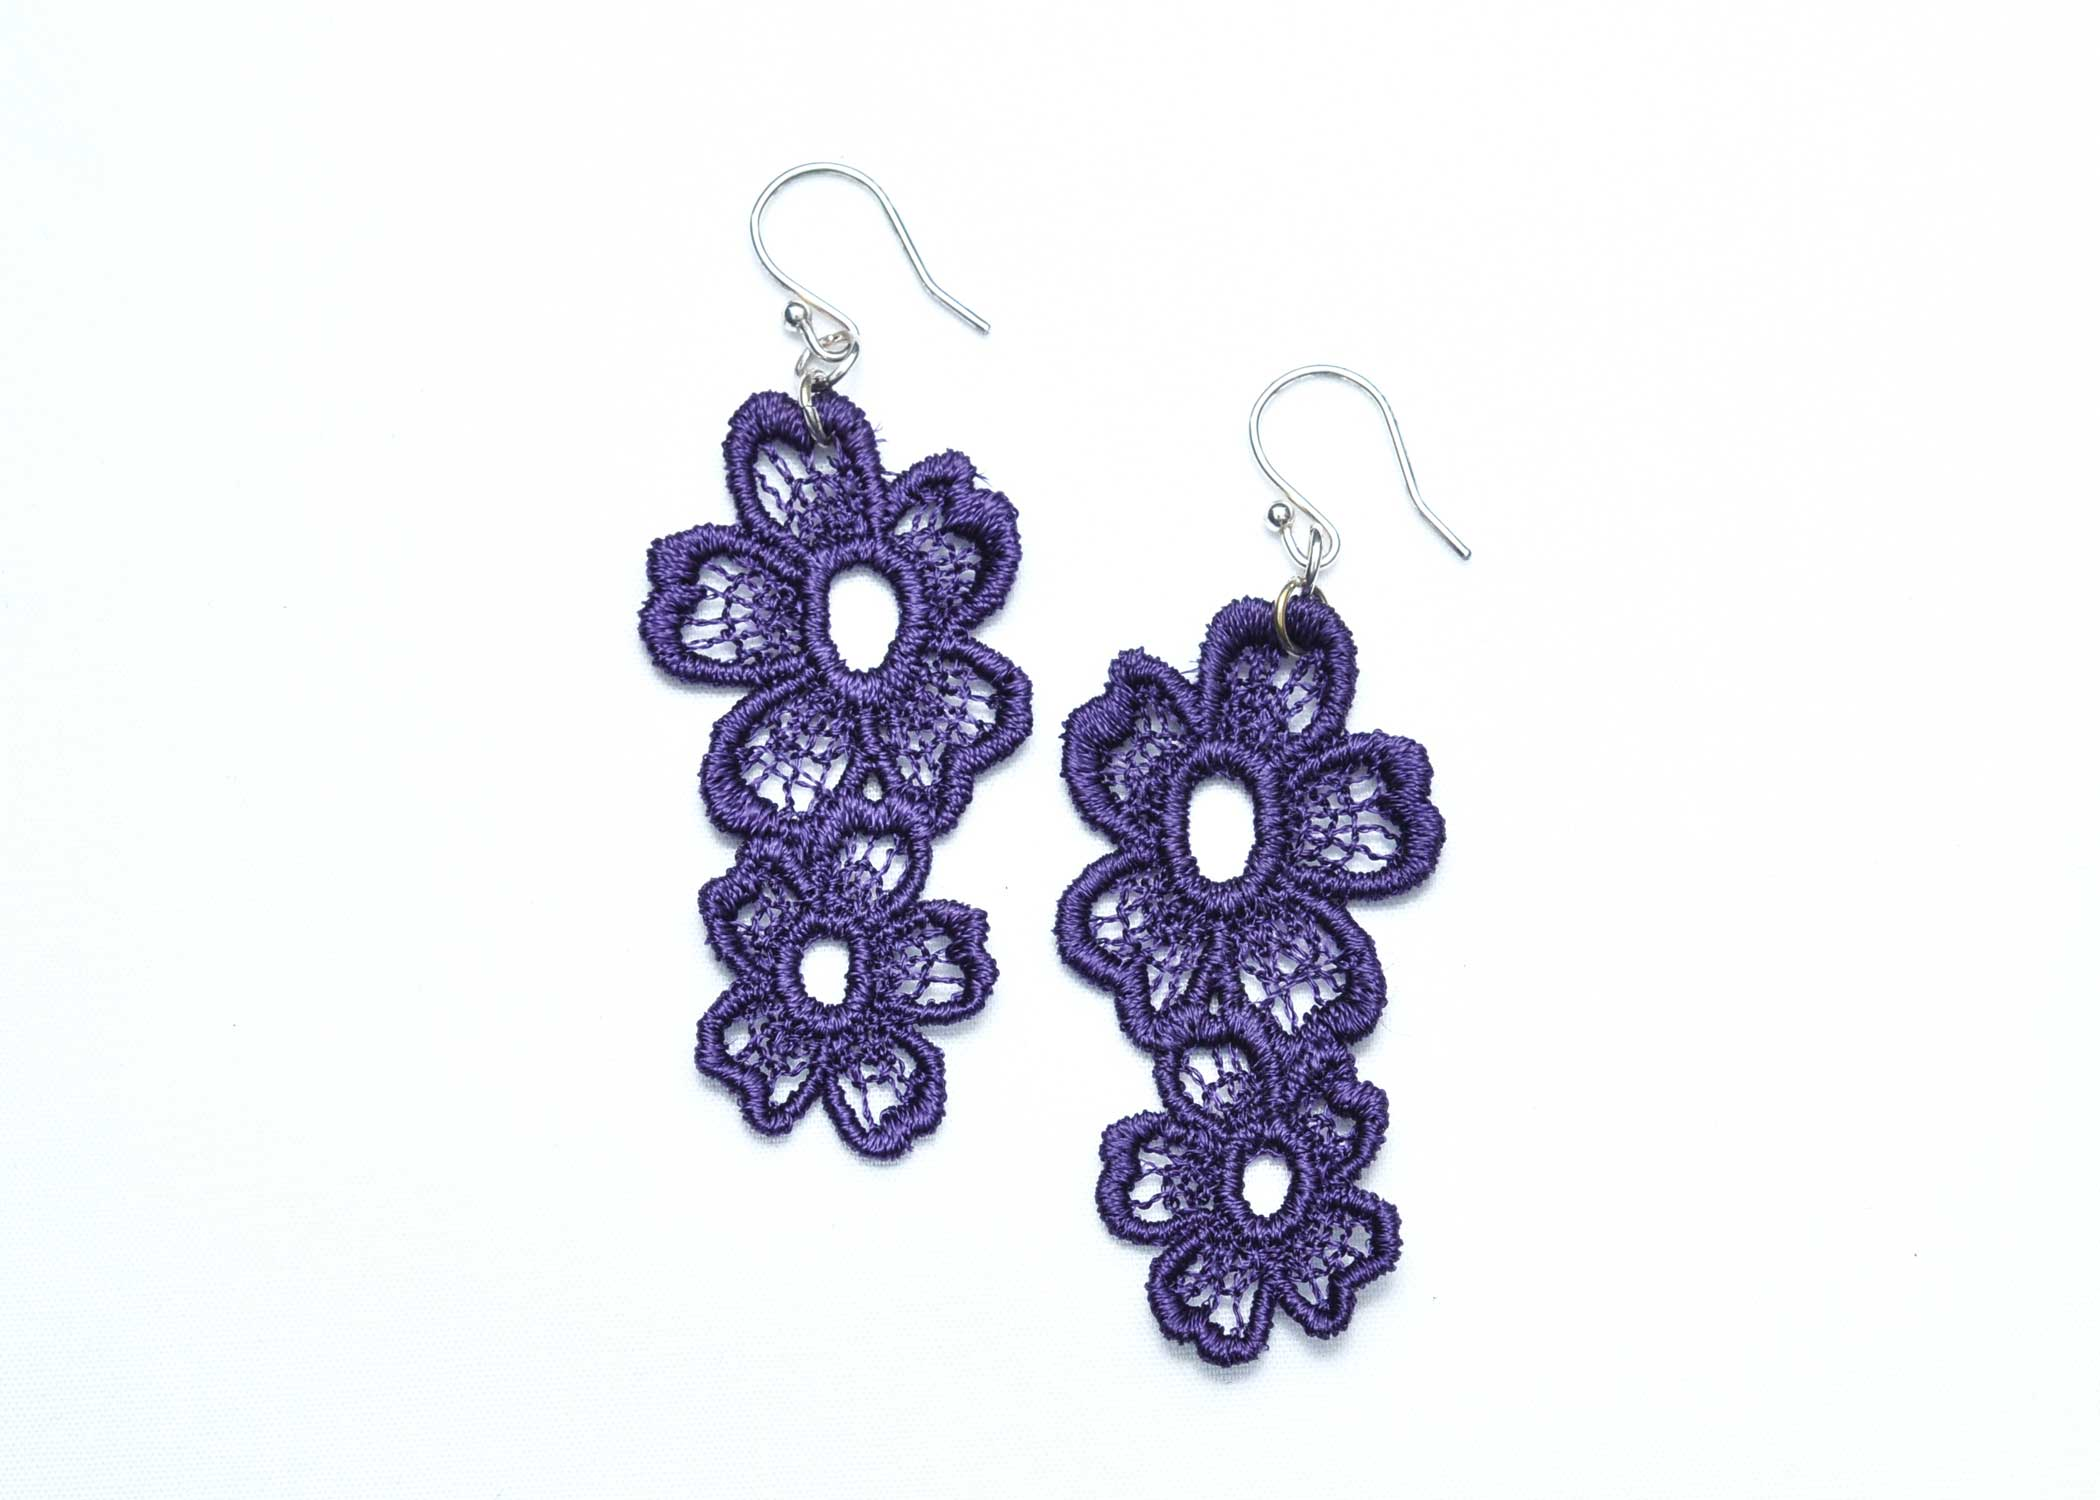 j.c.middlebrook Lace-Earring-E7-Purple.jpg